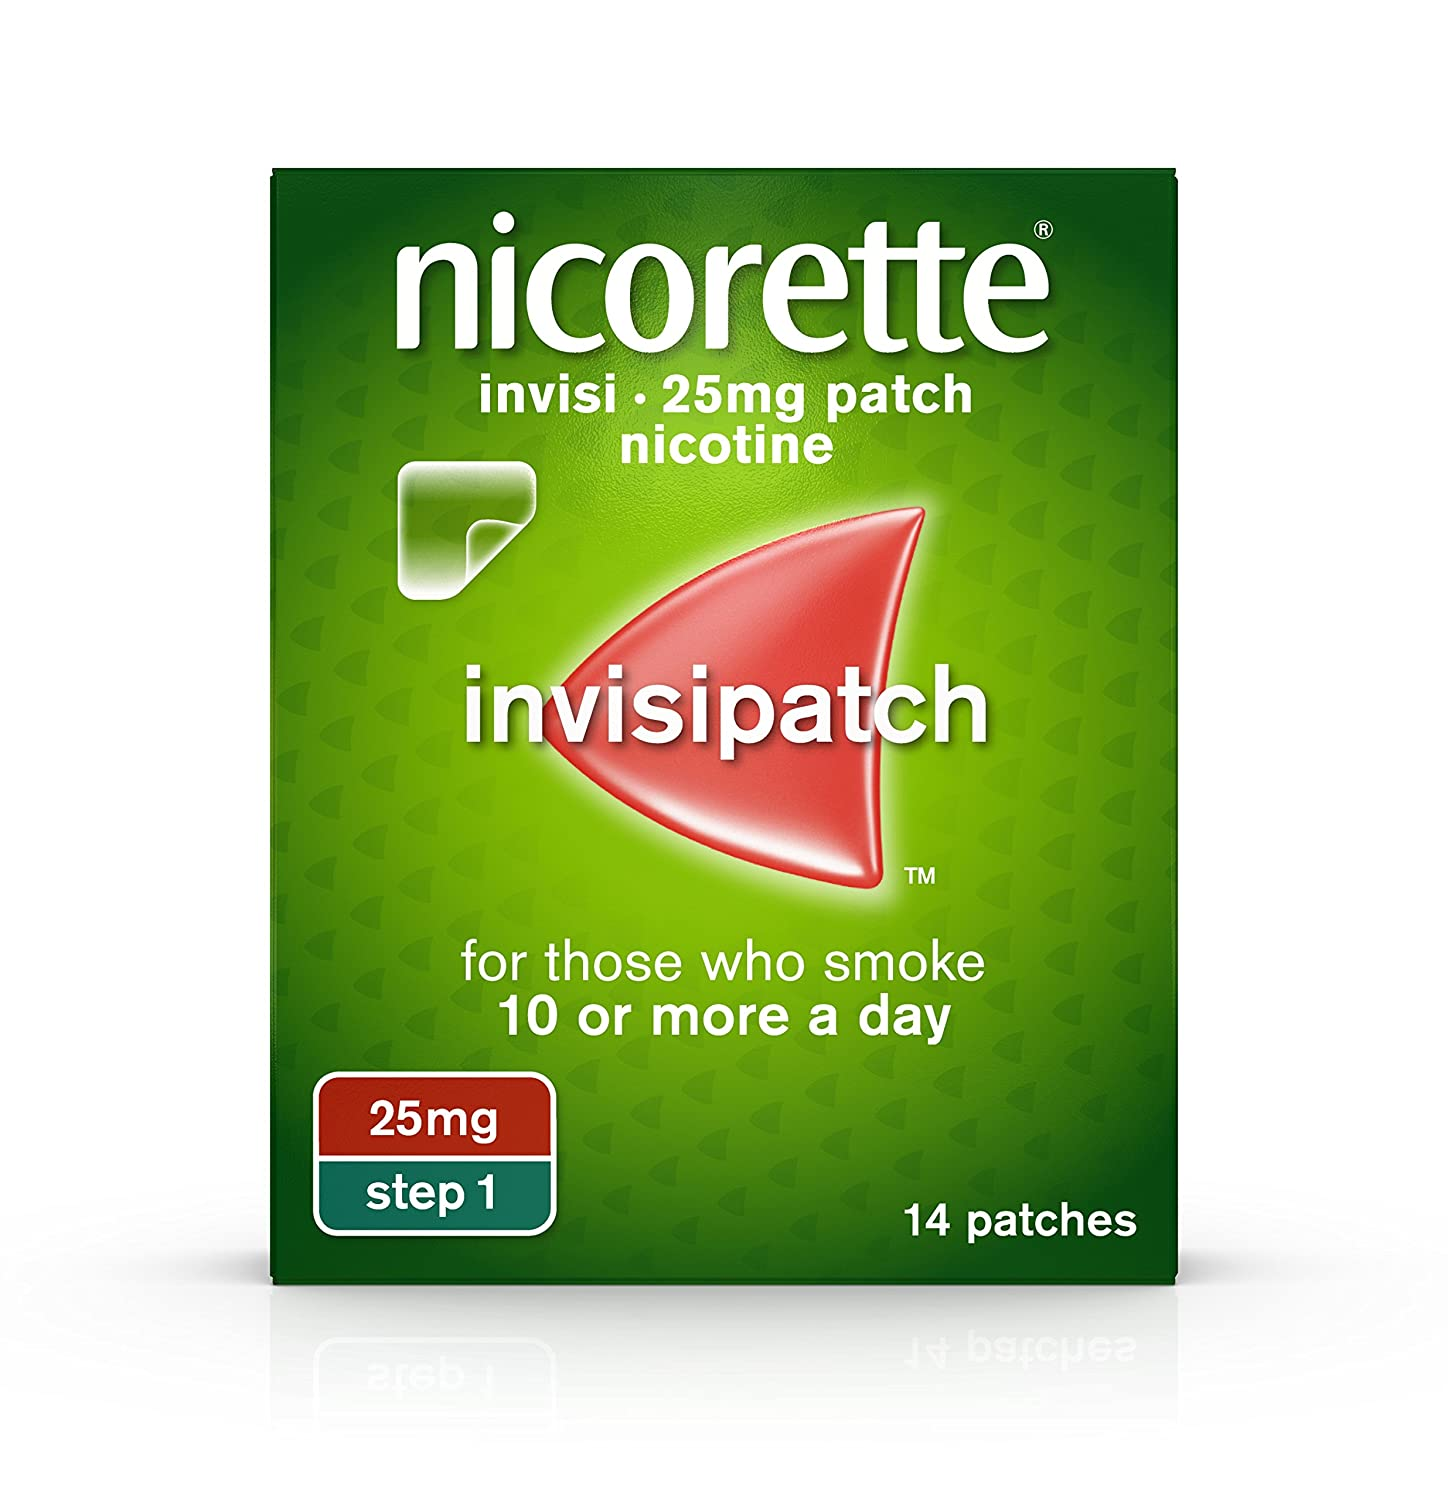 Nicorette Invisipatch Step 1 25 Mg 14 Nicotine Patches Stop Lt Pro Dual Function Dark 02r Gr Smoking Aid Health Personal Care